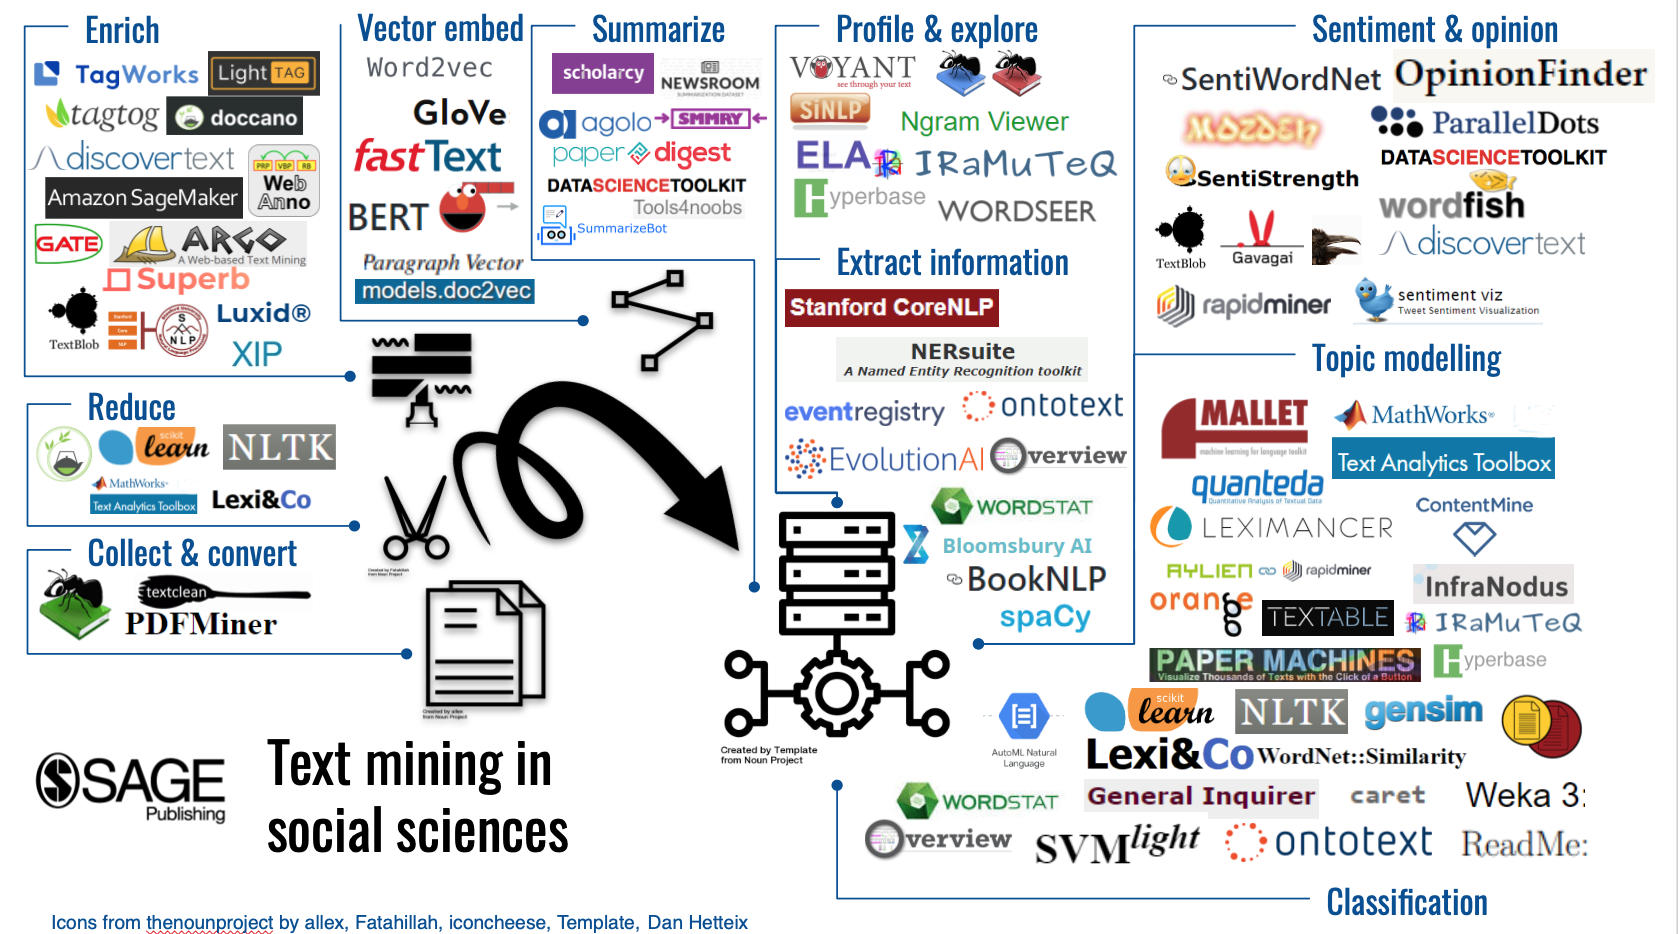 Fig. 7: Text mining tools and technologies based on the process they support.